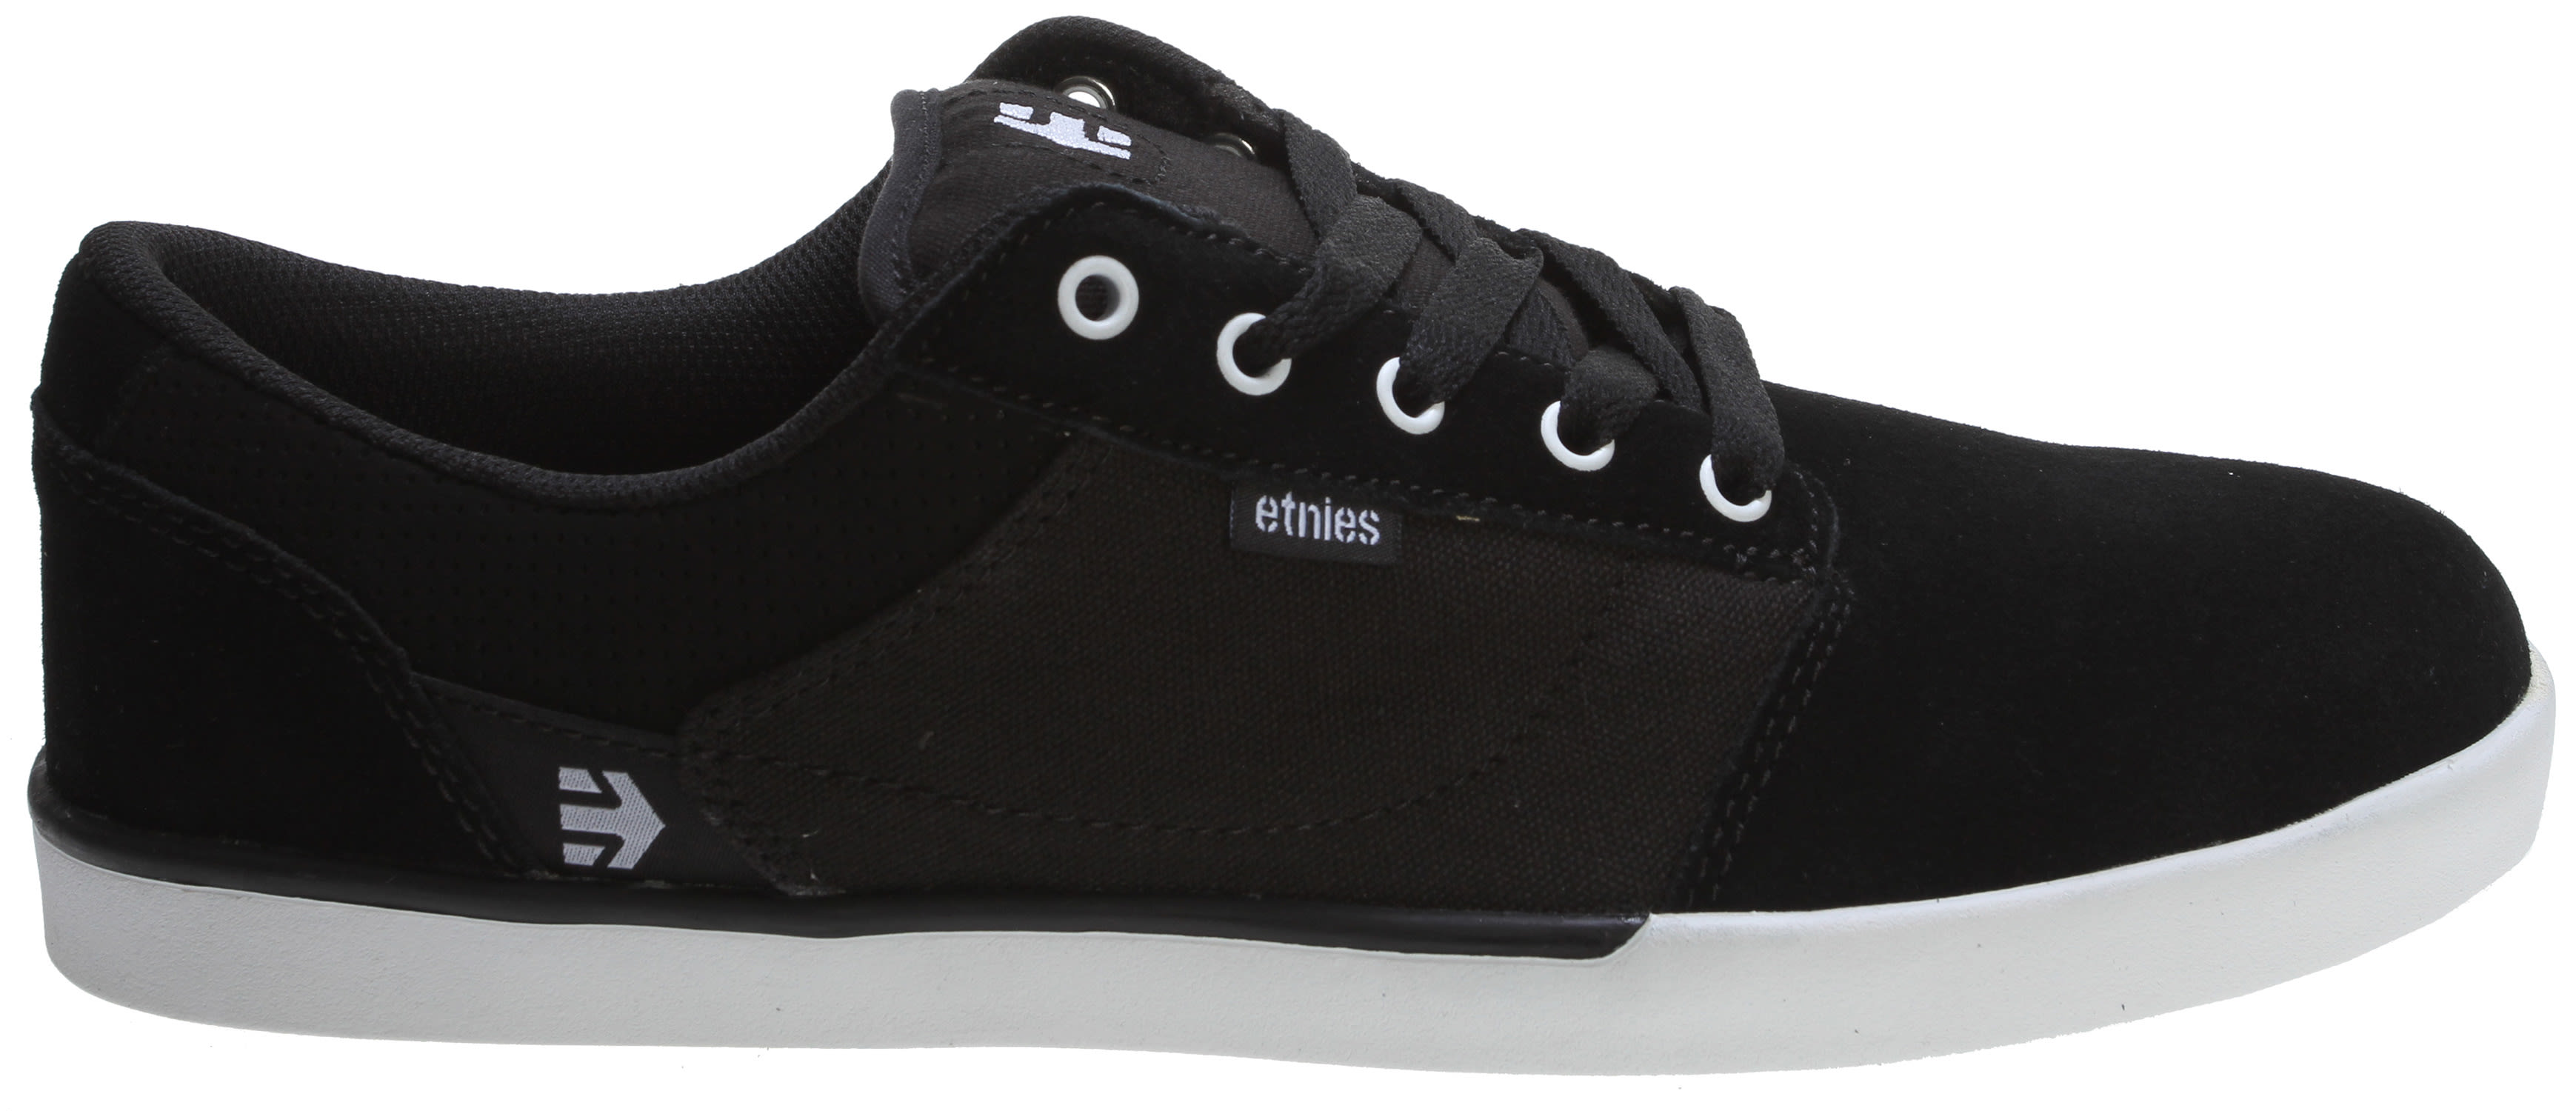 Etnies Skate Shoes - Etnies Fader Skate Shoes - Dark Grey/Black